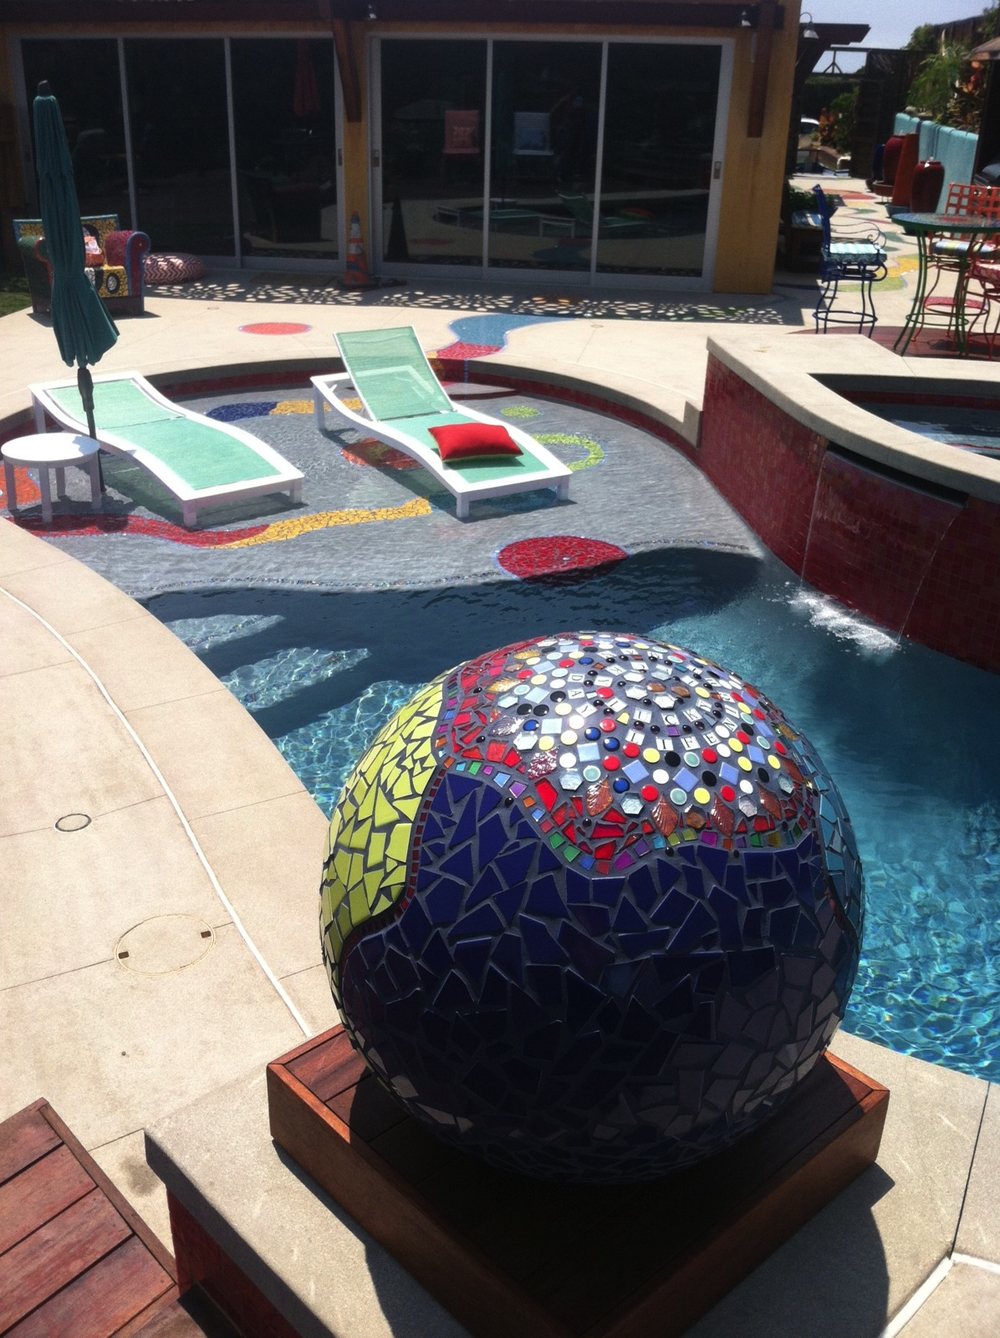 Mosaic Tile Garden Ball